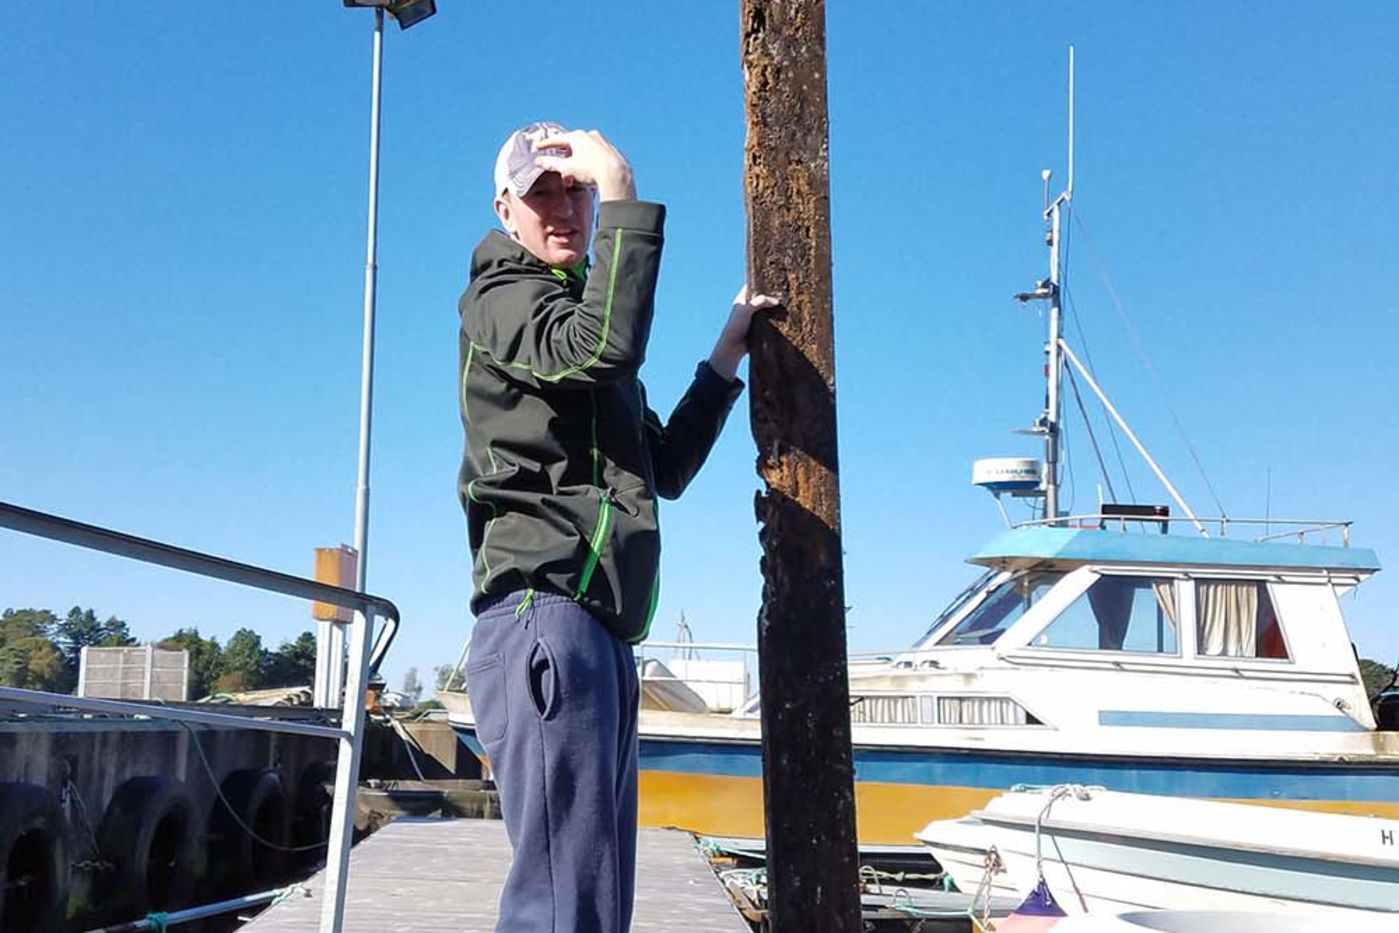 A man standing on a dock holding up a wooden pillar taller than he is, in front of boats and with a bright blue sky background.